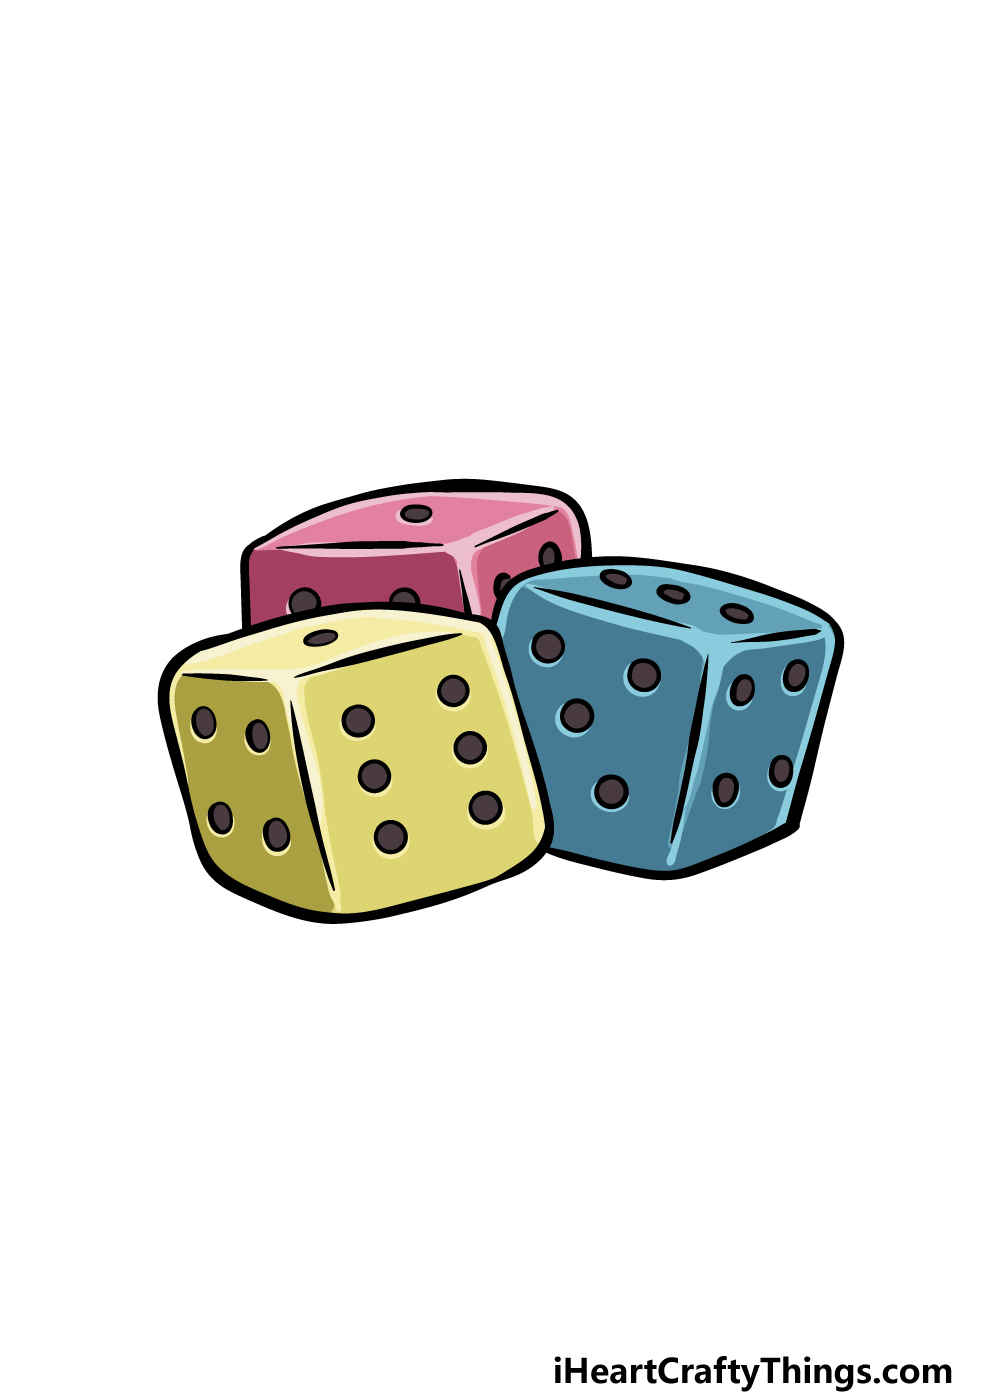 drawing the dice step 6